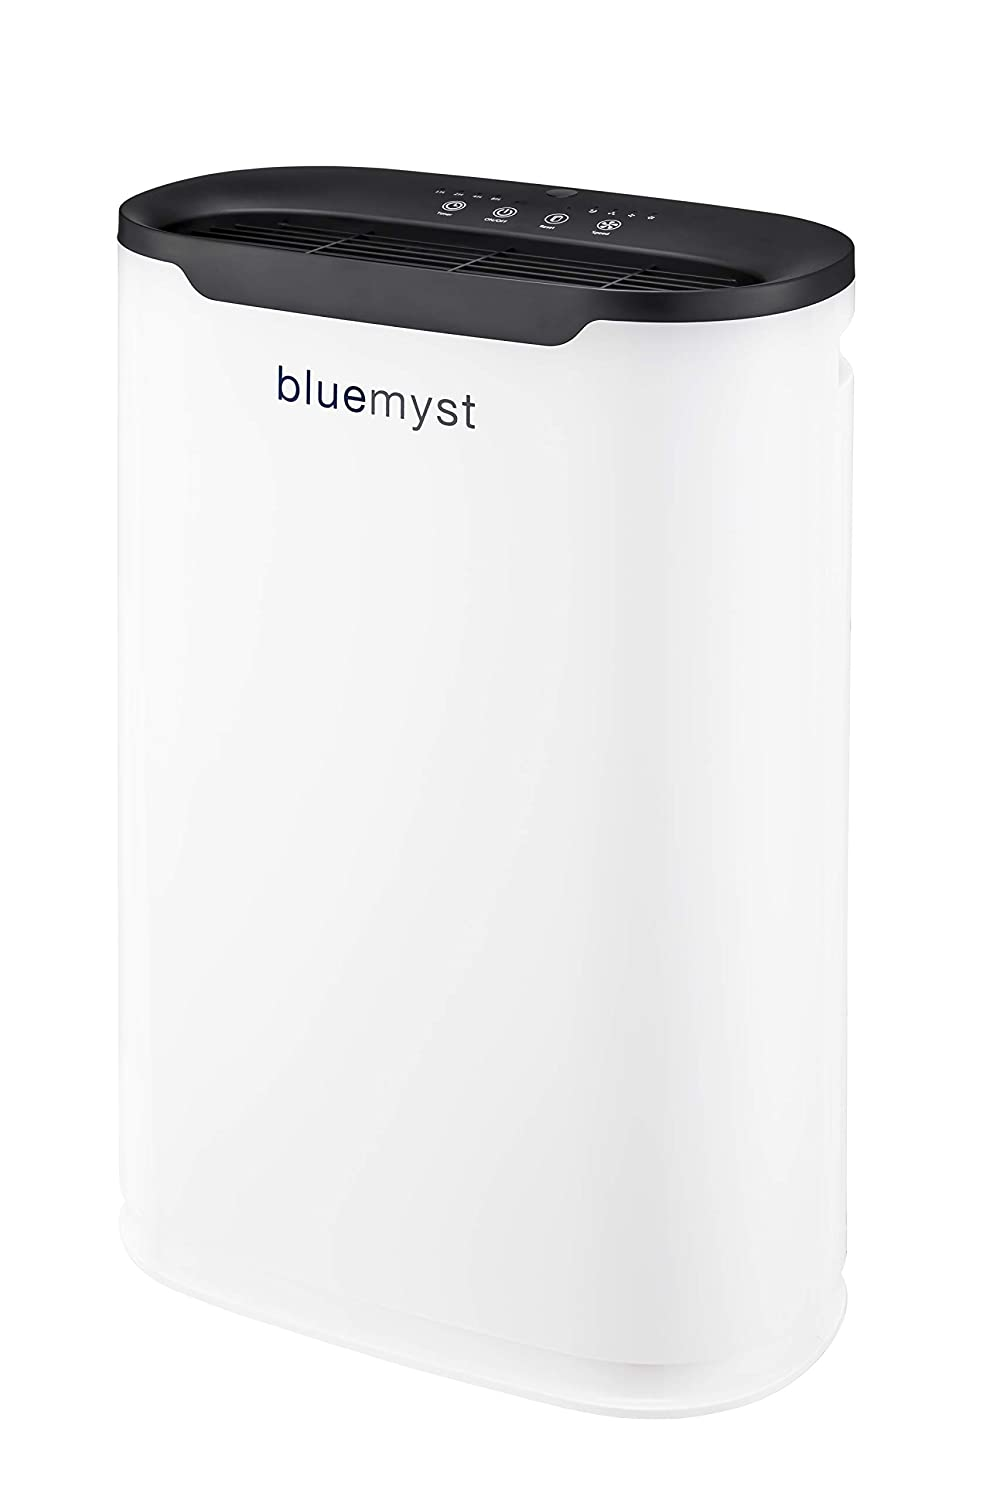 Bluemyst HEPA Air Purifier with 5-in-1 of Filtration for Rooms up to 250 sq ft, Captures Allergens, Odors, Smoke, Mold, Dust, Germs and Pet Dander with Remote Control, White Black